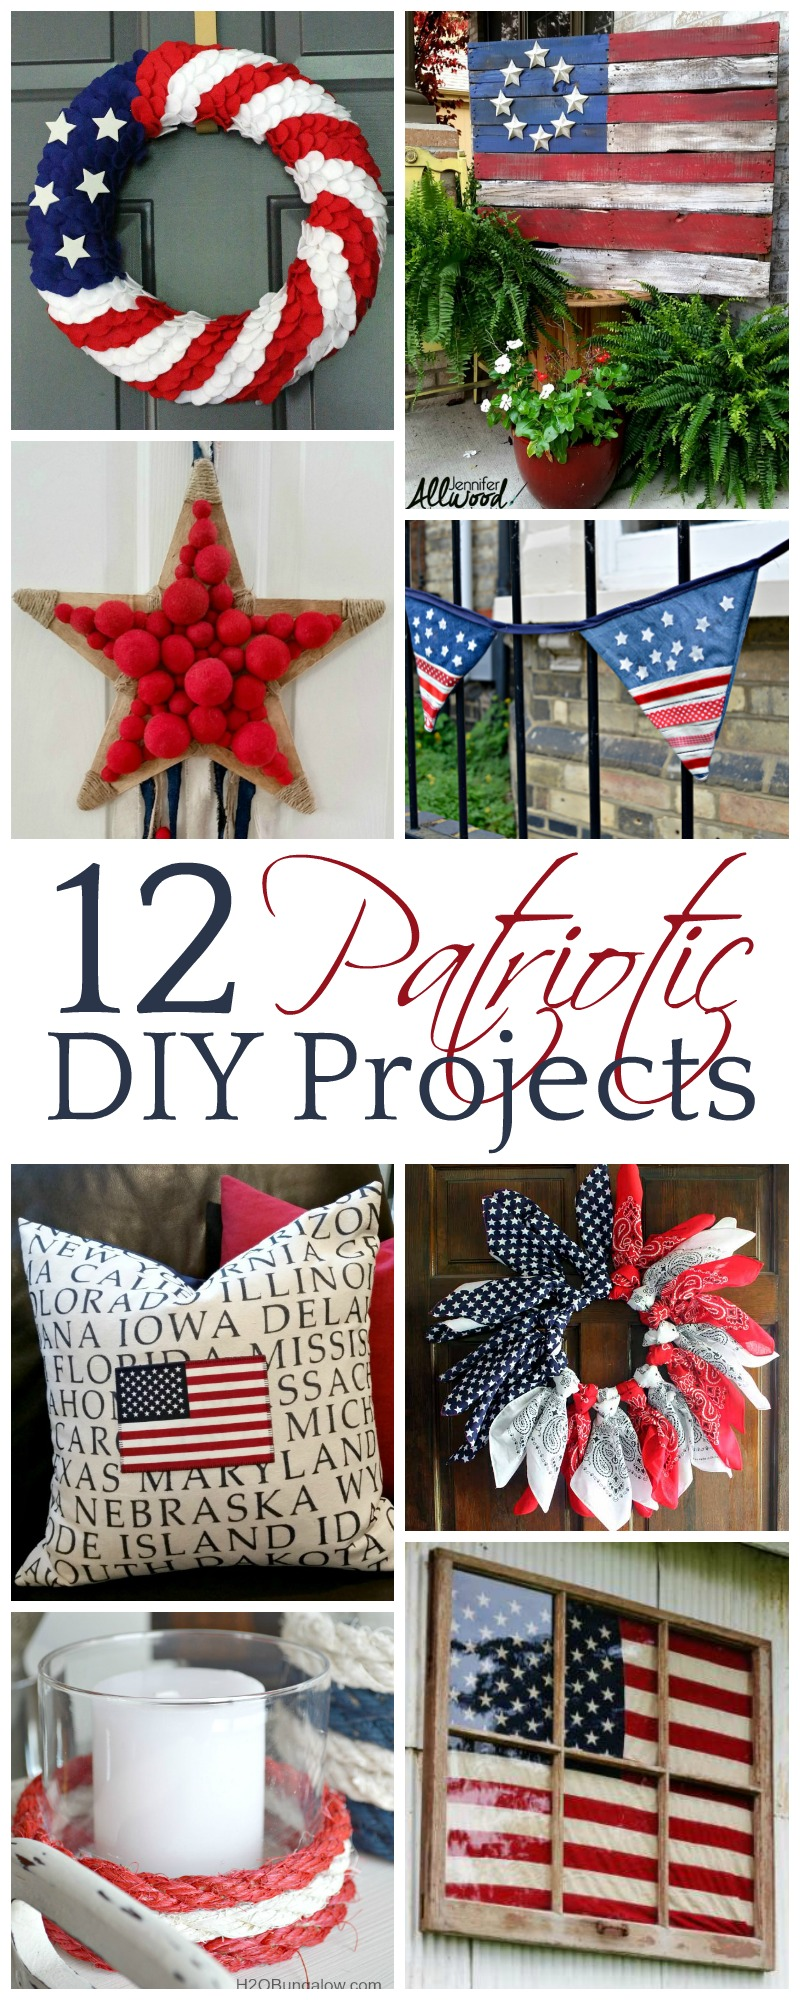 12 Patriotic Diy Projects Mm 157 A Wonderful Thought